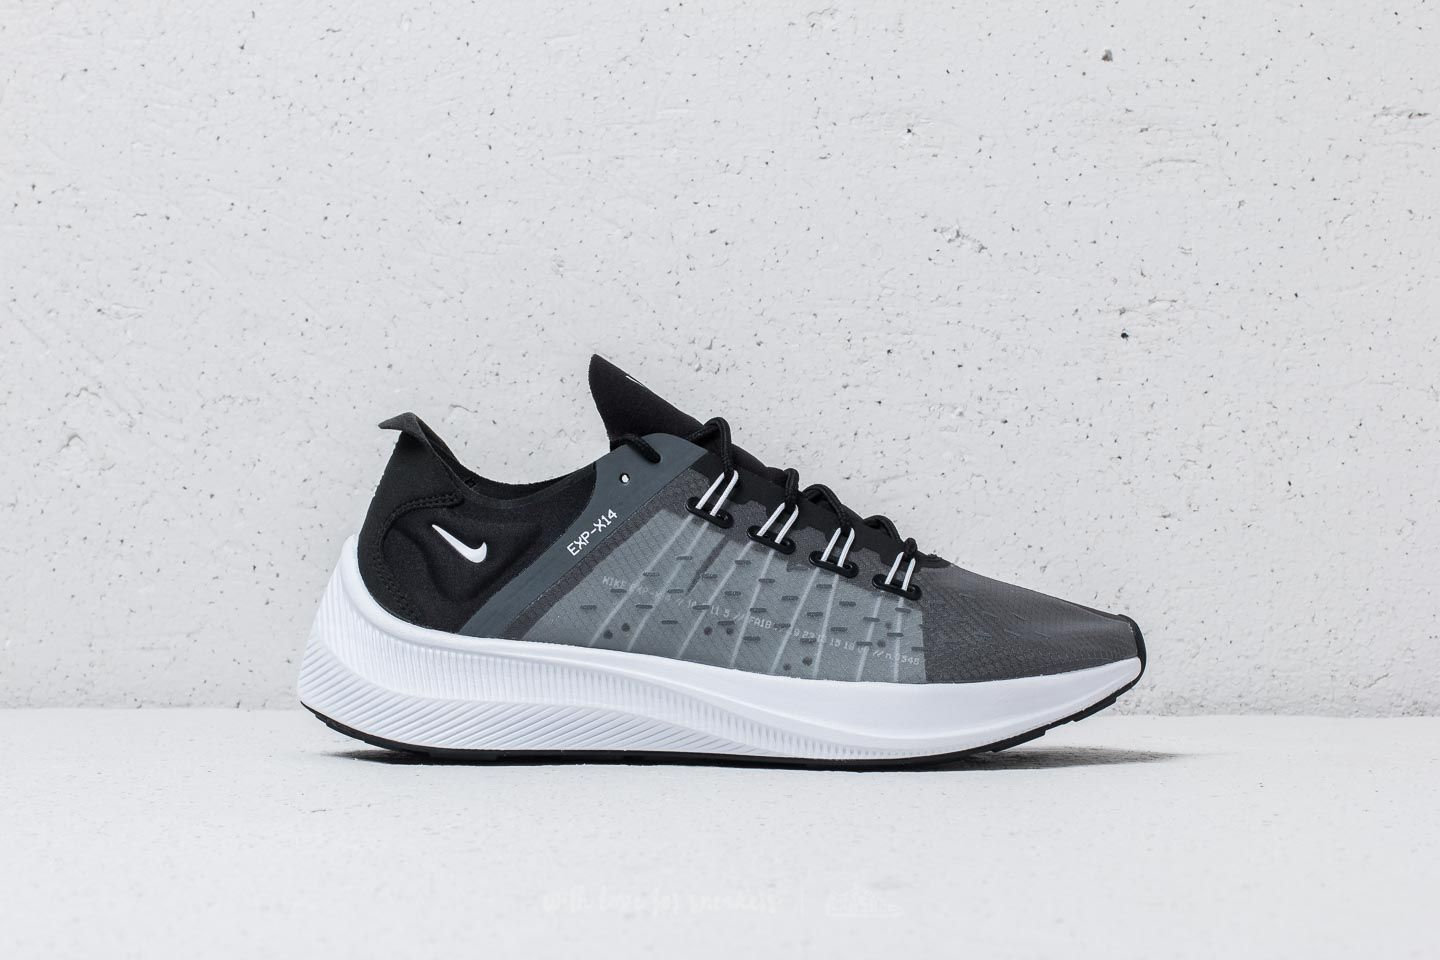 wholesale dealer 9cf39 986ee ... canada nike exp x14 w black dark grey white at a great price 128 2056c  08ffd